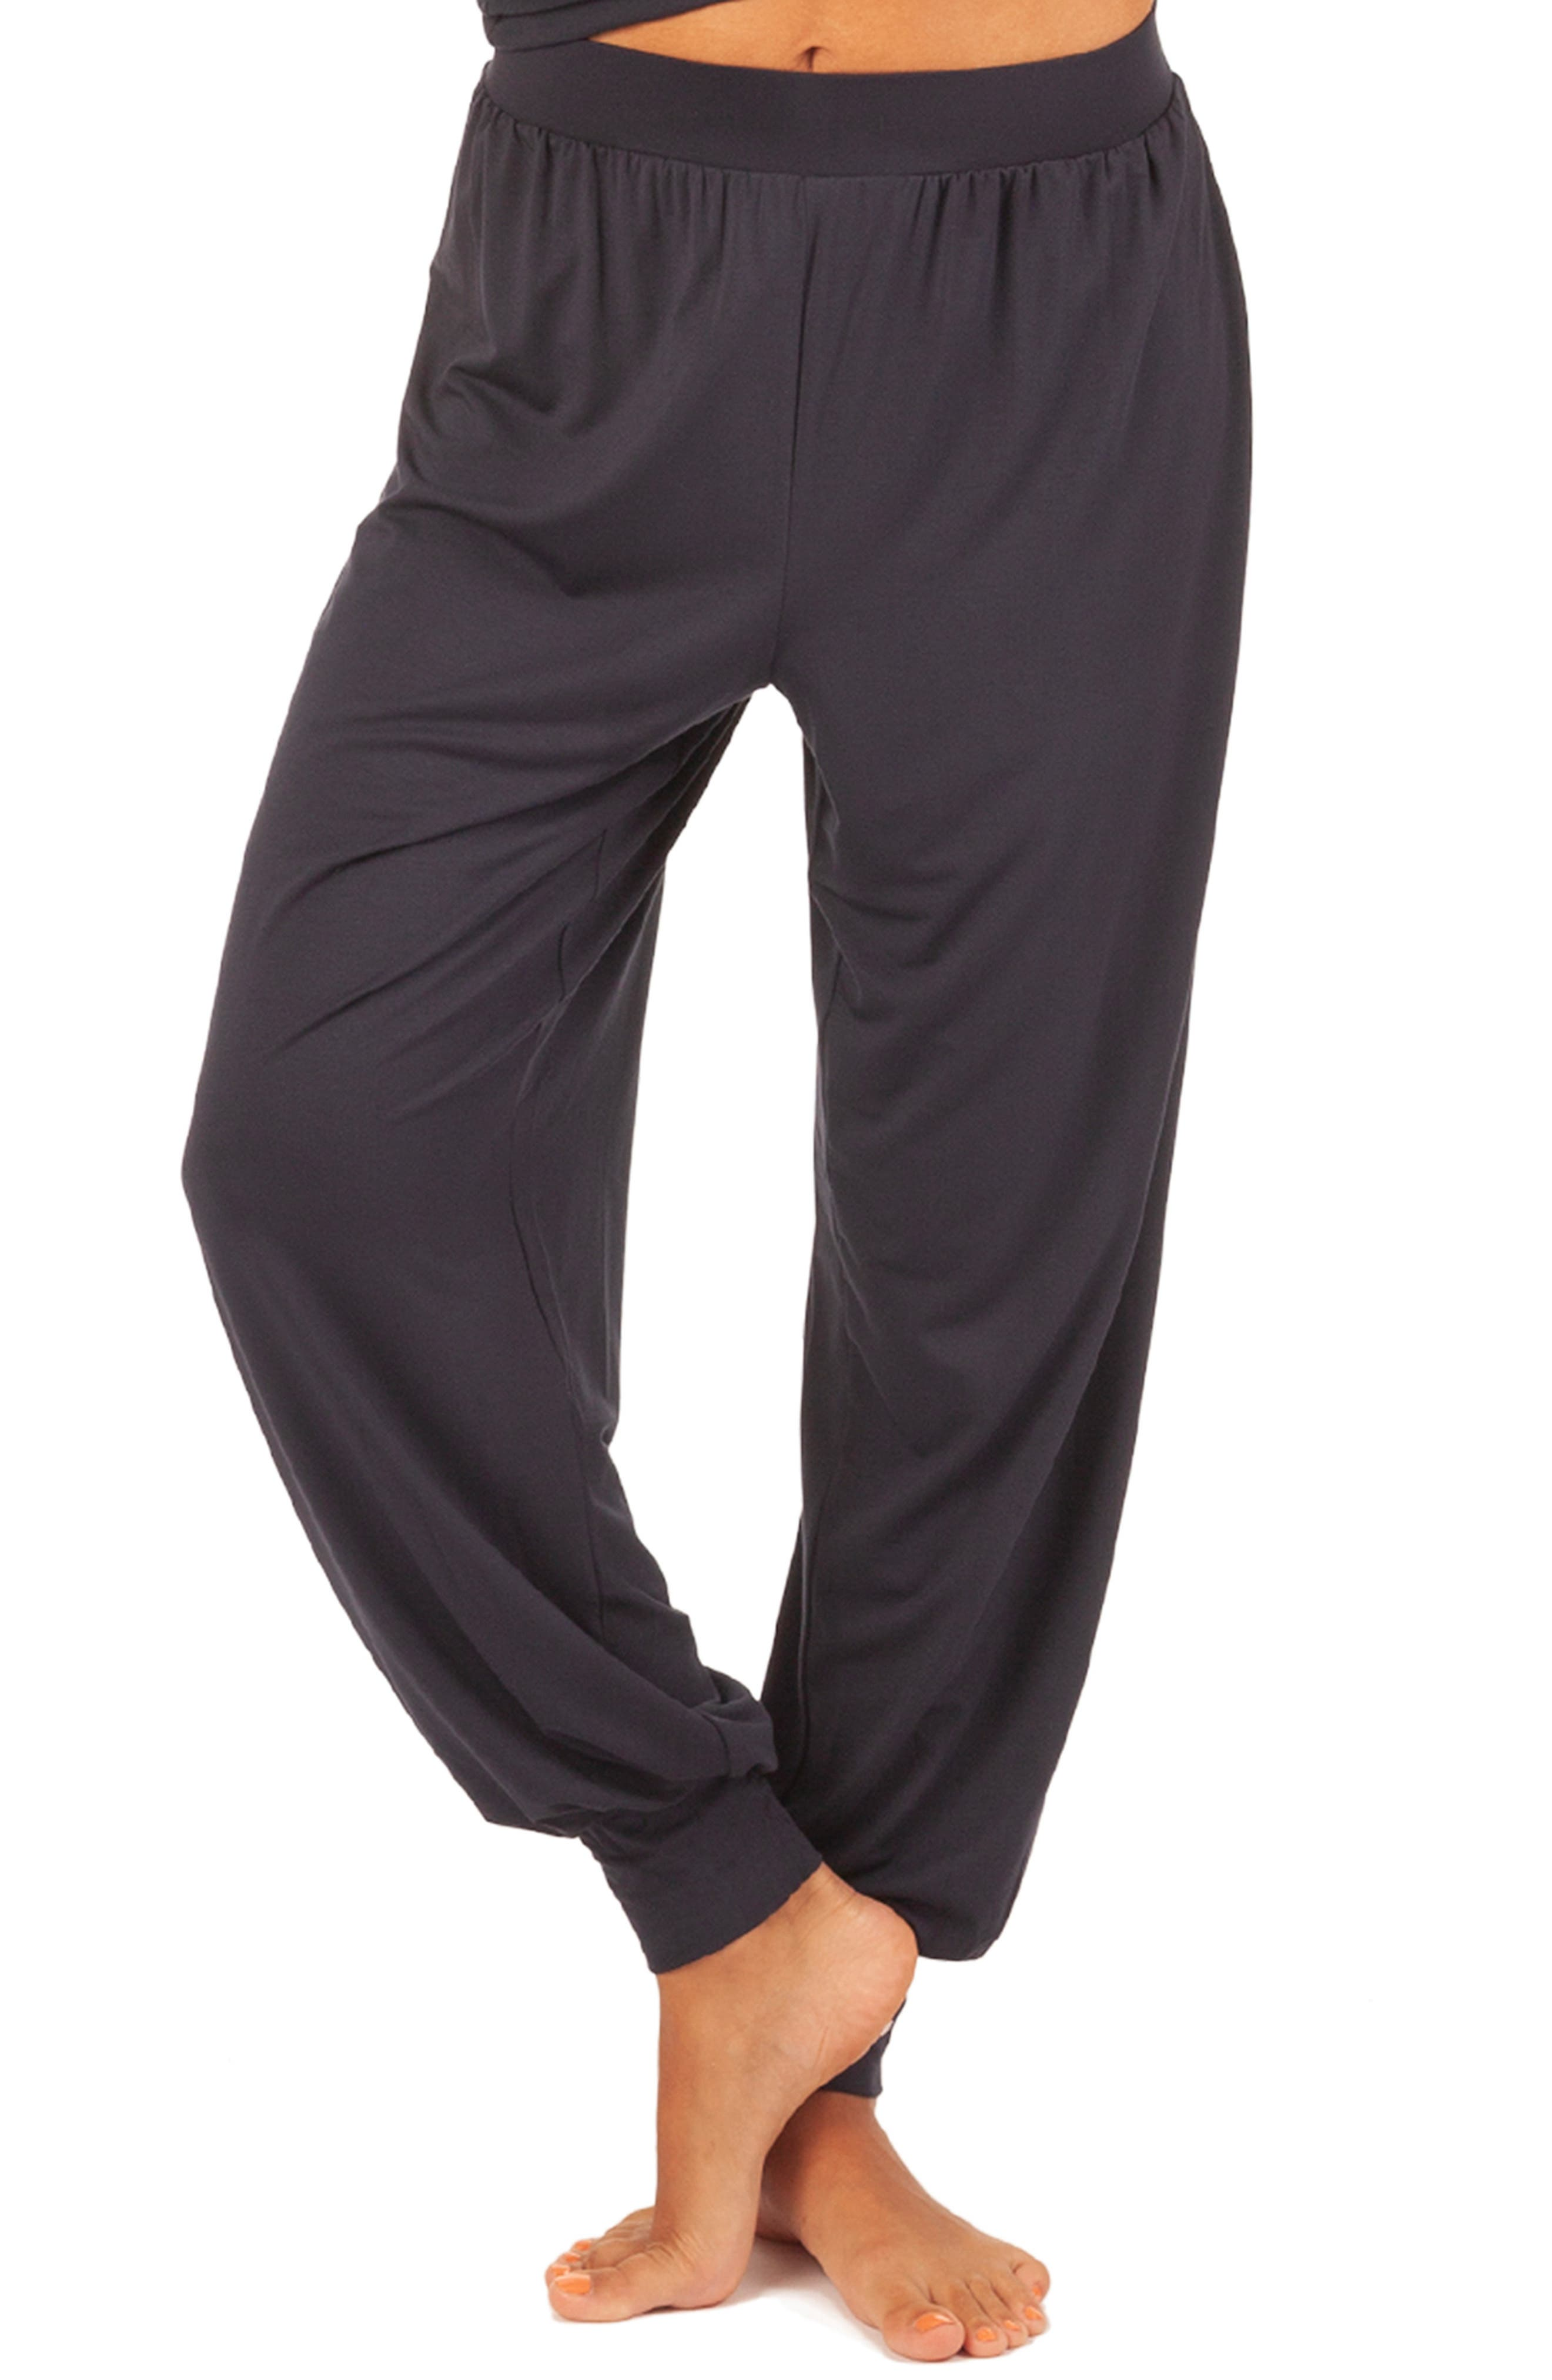 LIVELY The All-Day Jogger Pants   Nordstrom